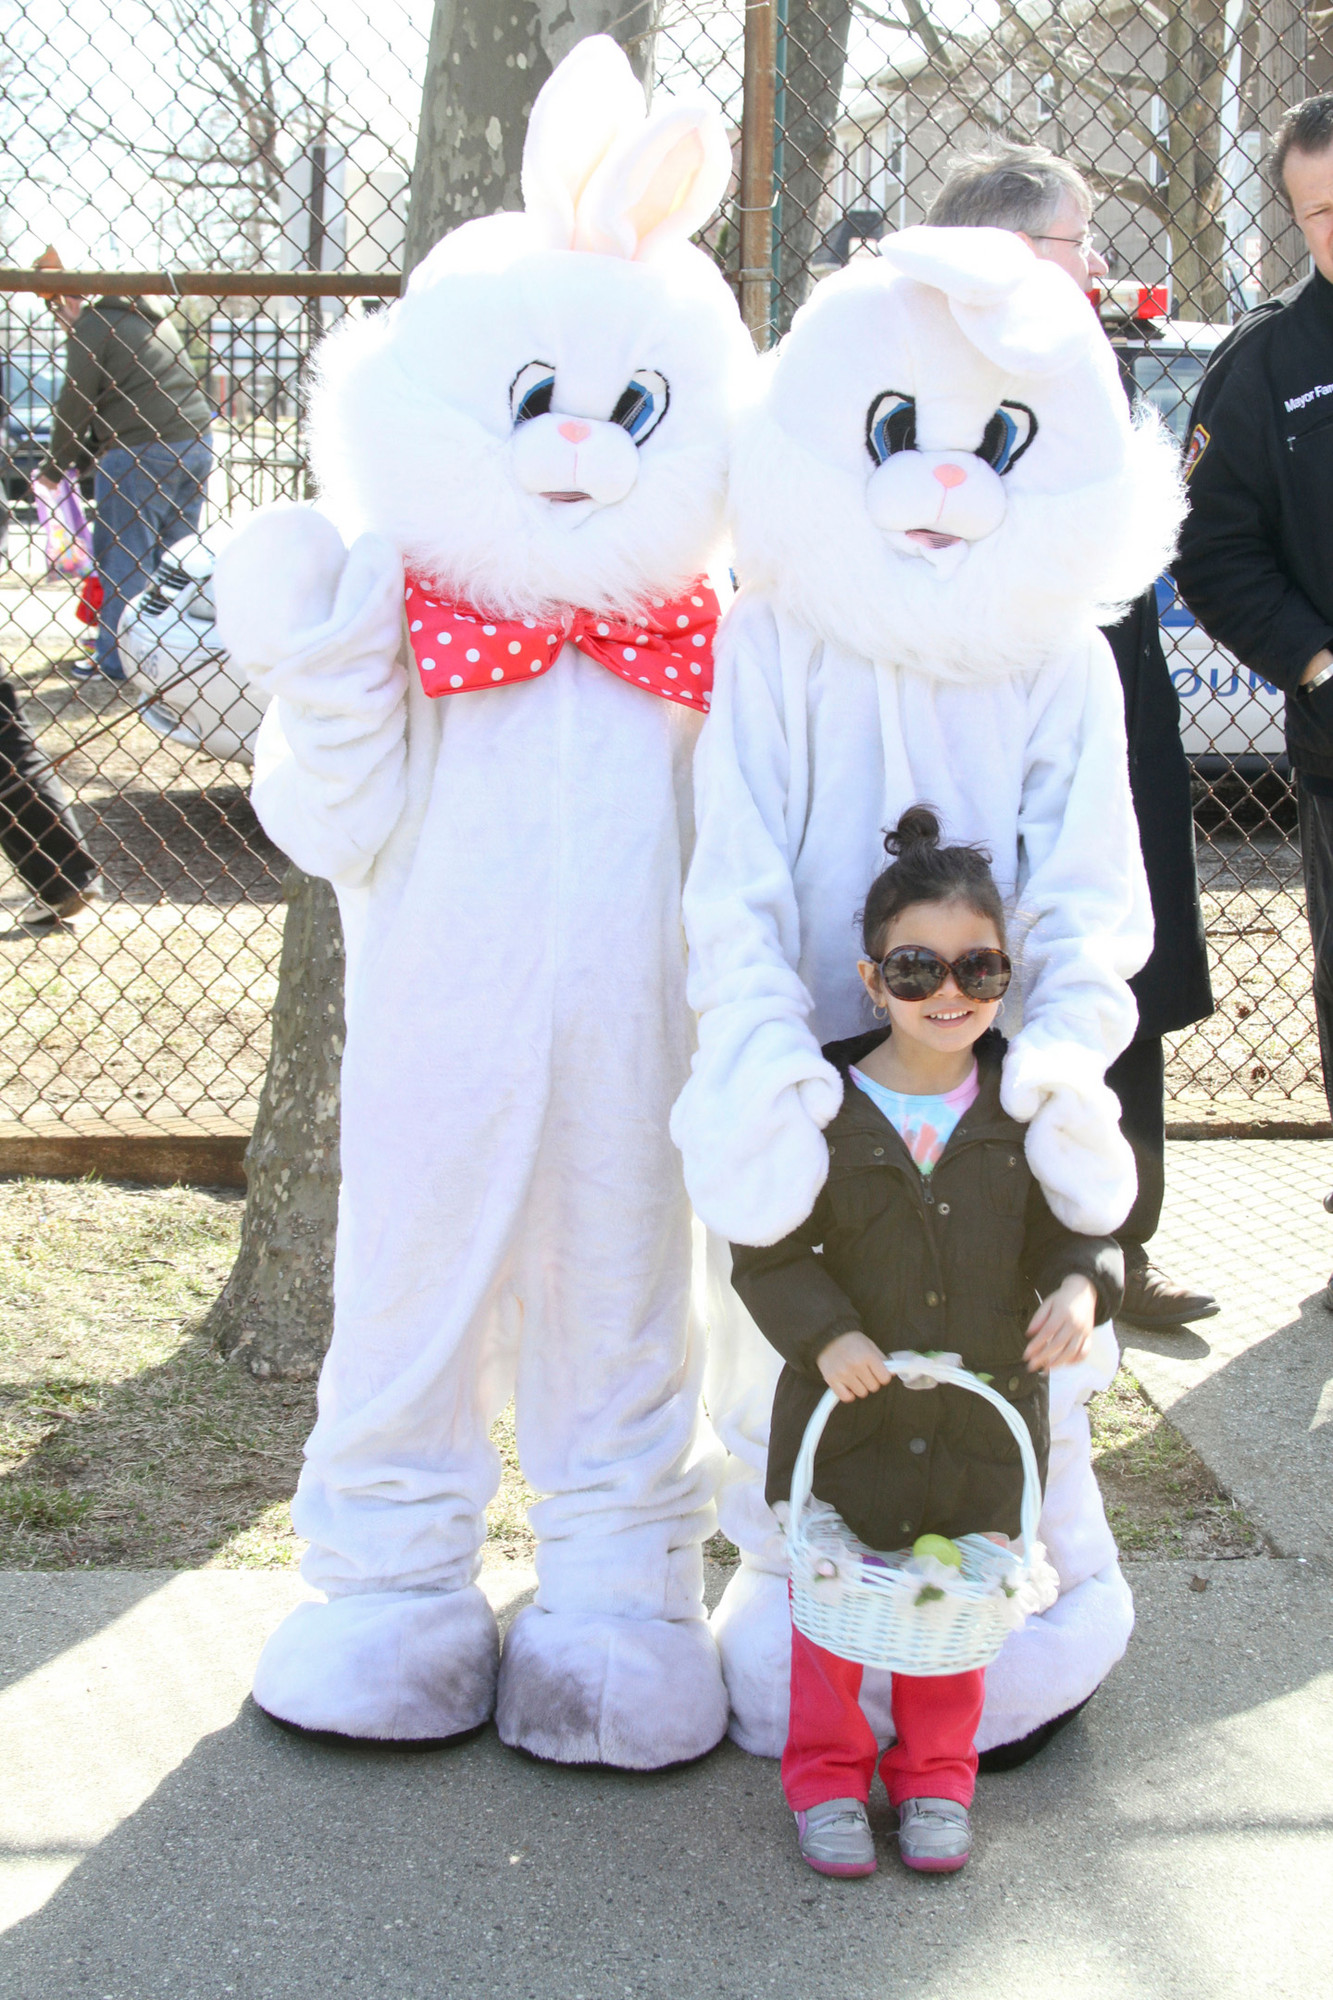 Liliana Ortiz, 4, with Mr. and Mrs. Easter Bunny played by volunteers from the Valley Stream Youth Council.